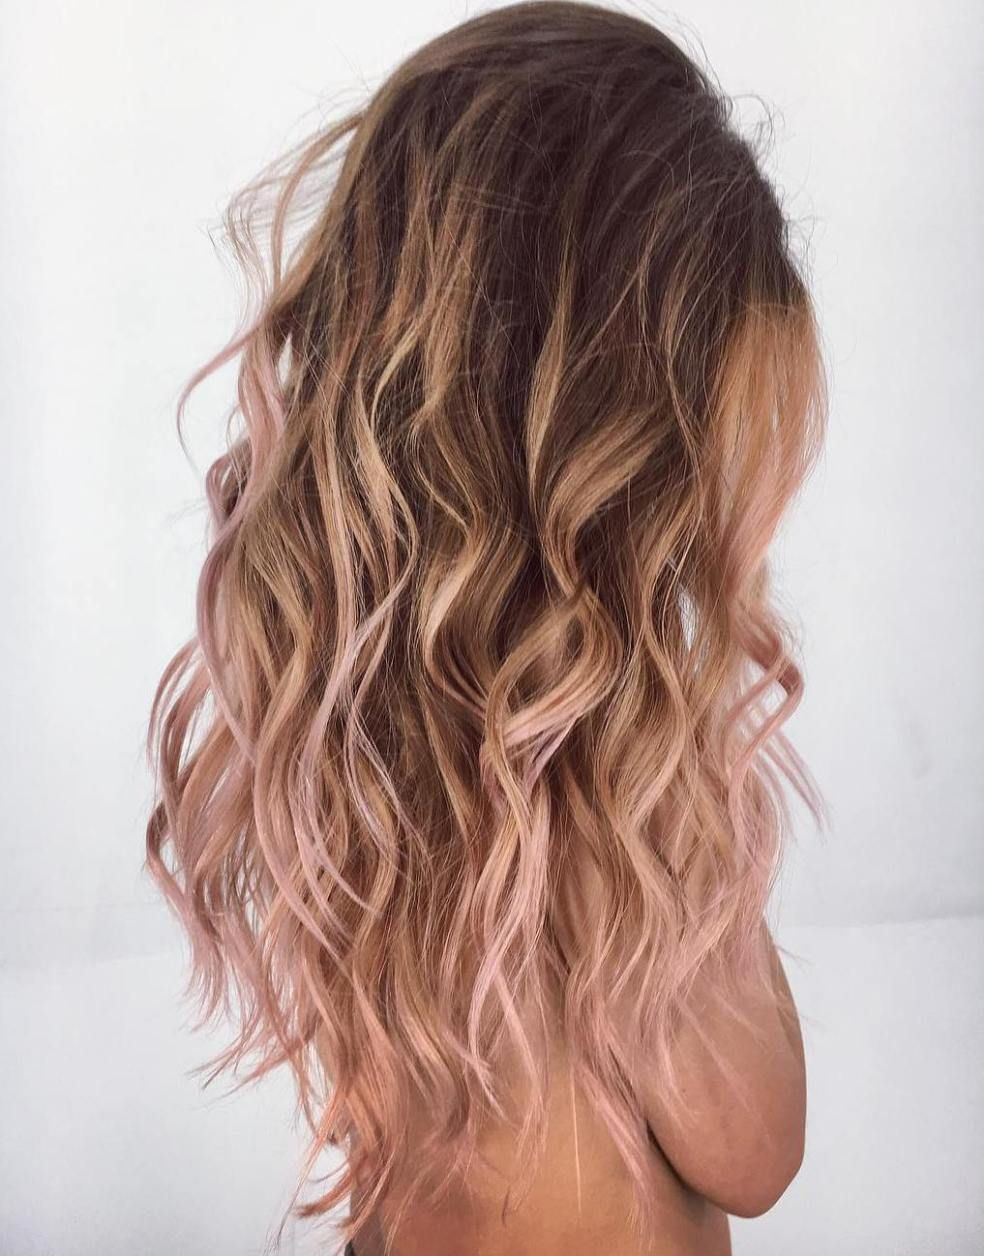 20 Brilliant Rose Gold Hair Color Ideas Hair Gold Hair Colors